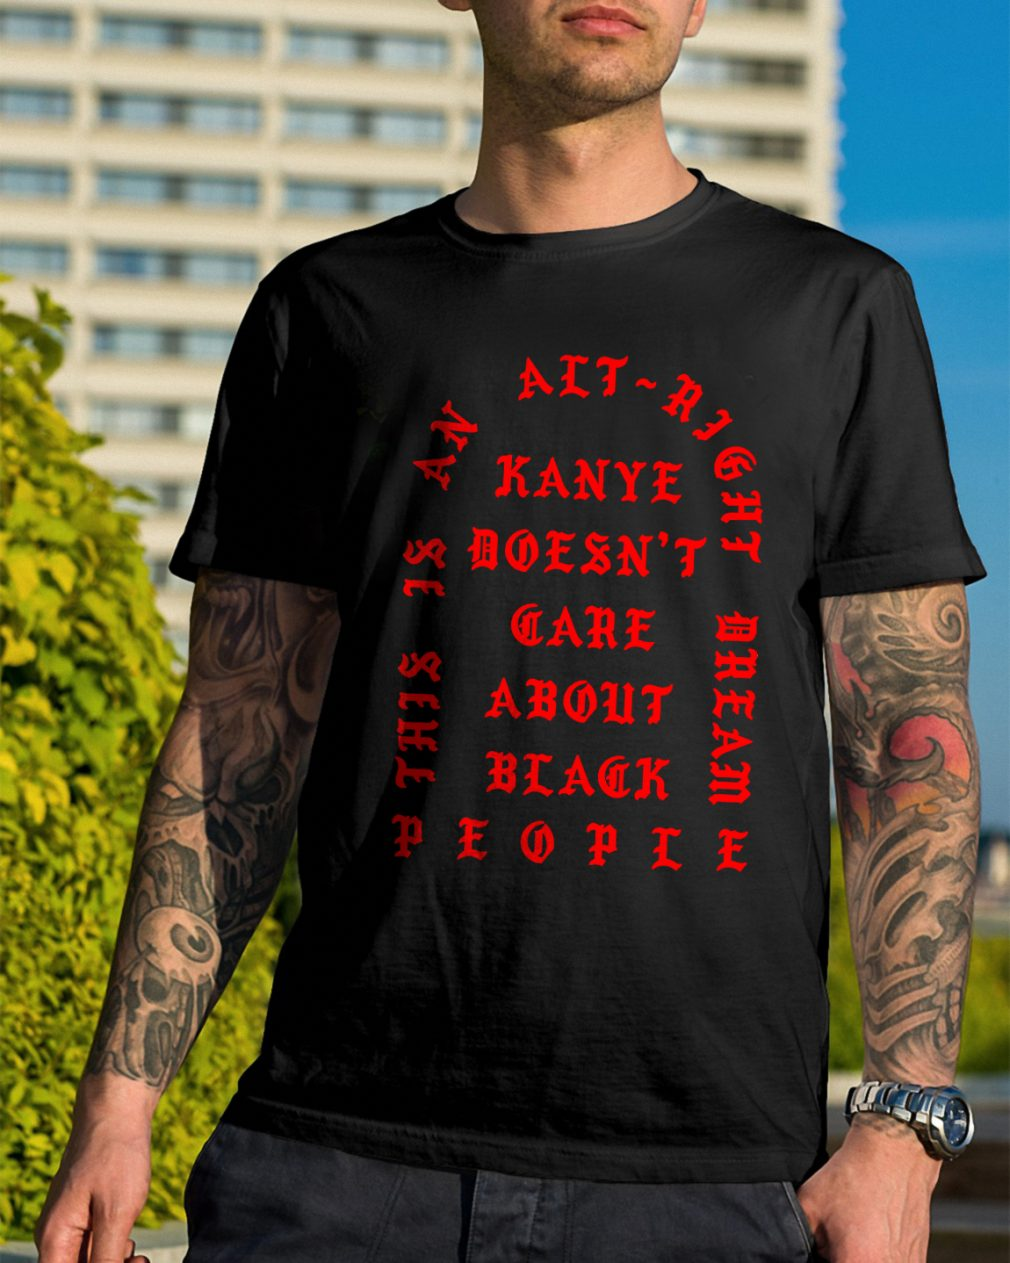 Kanye Doesnt Care Black People Shirt